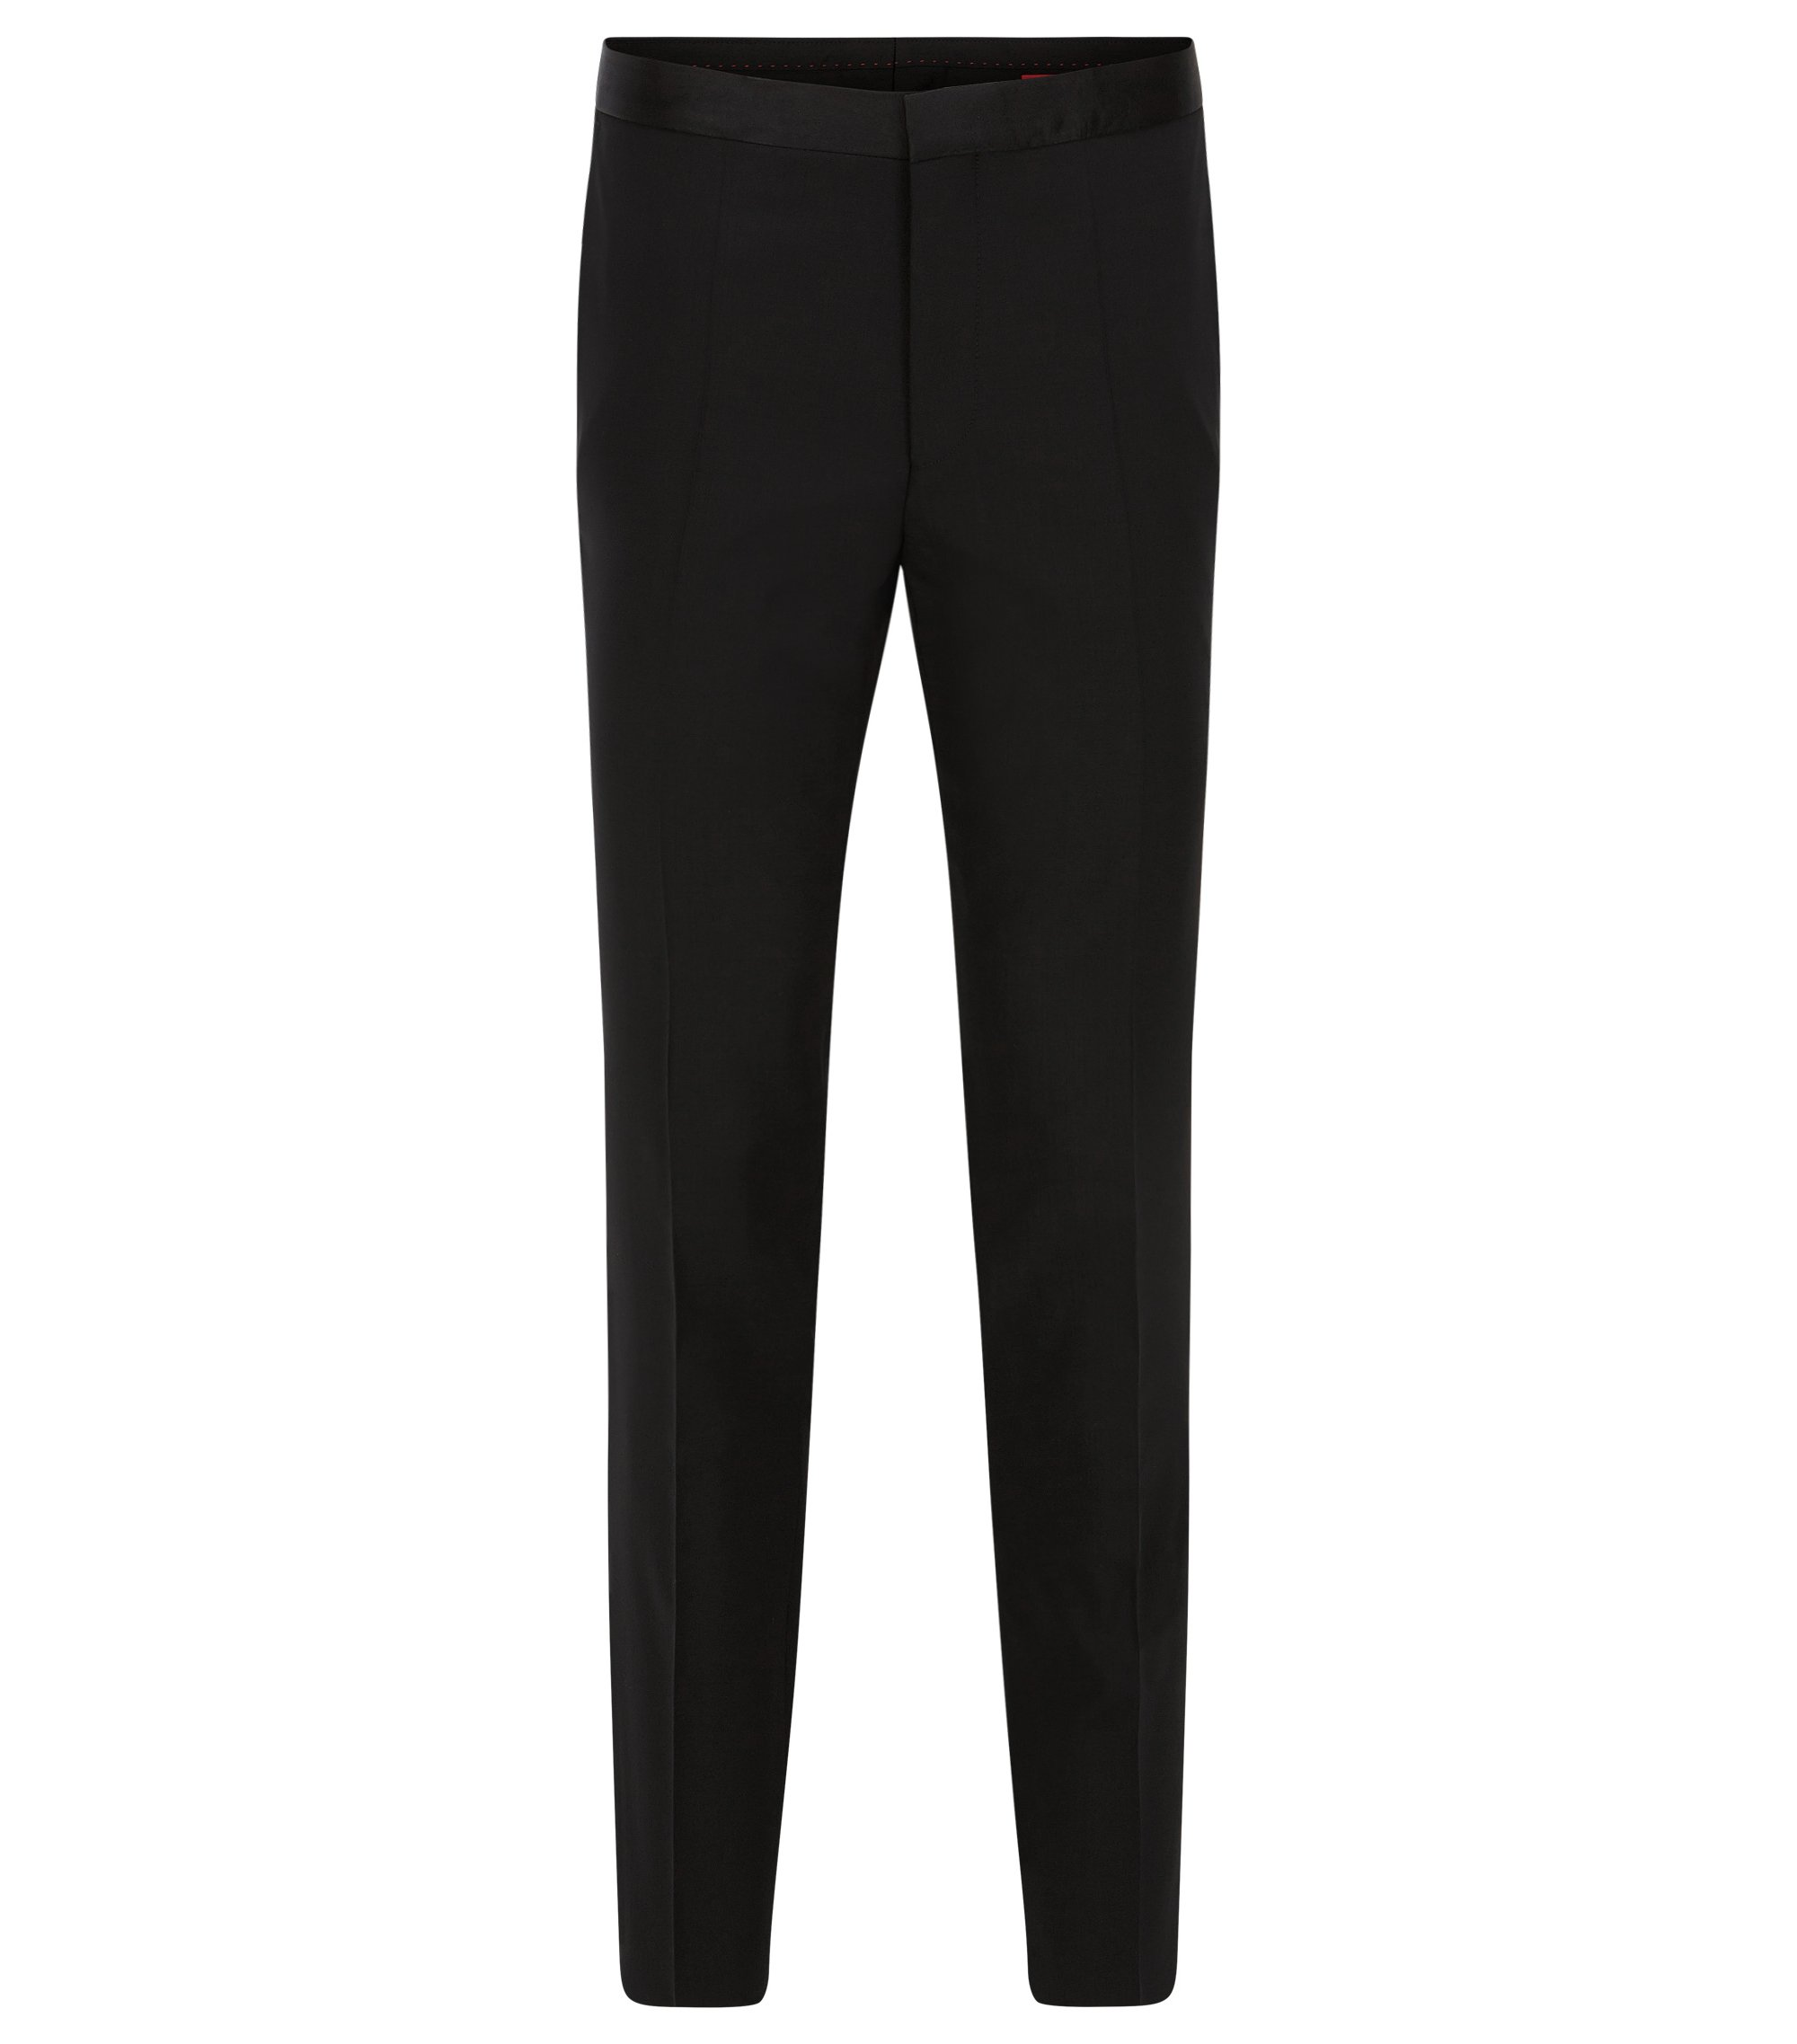 Pantalon de smoking à jambes slim en laine stretch , Noir